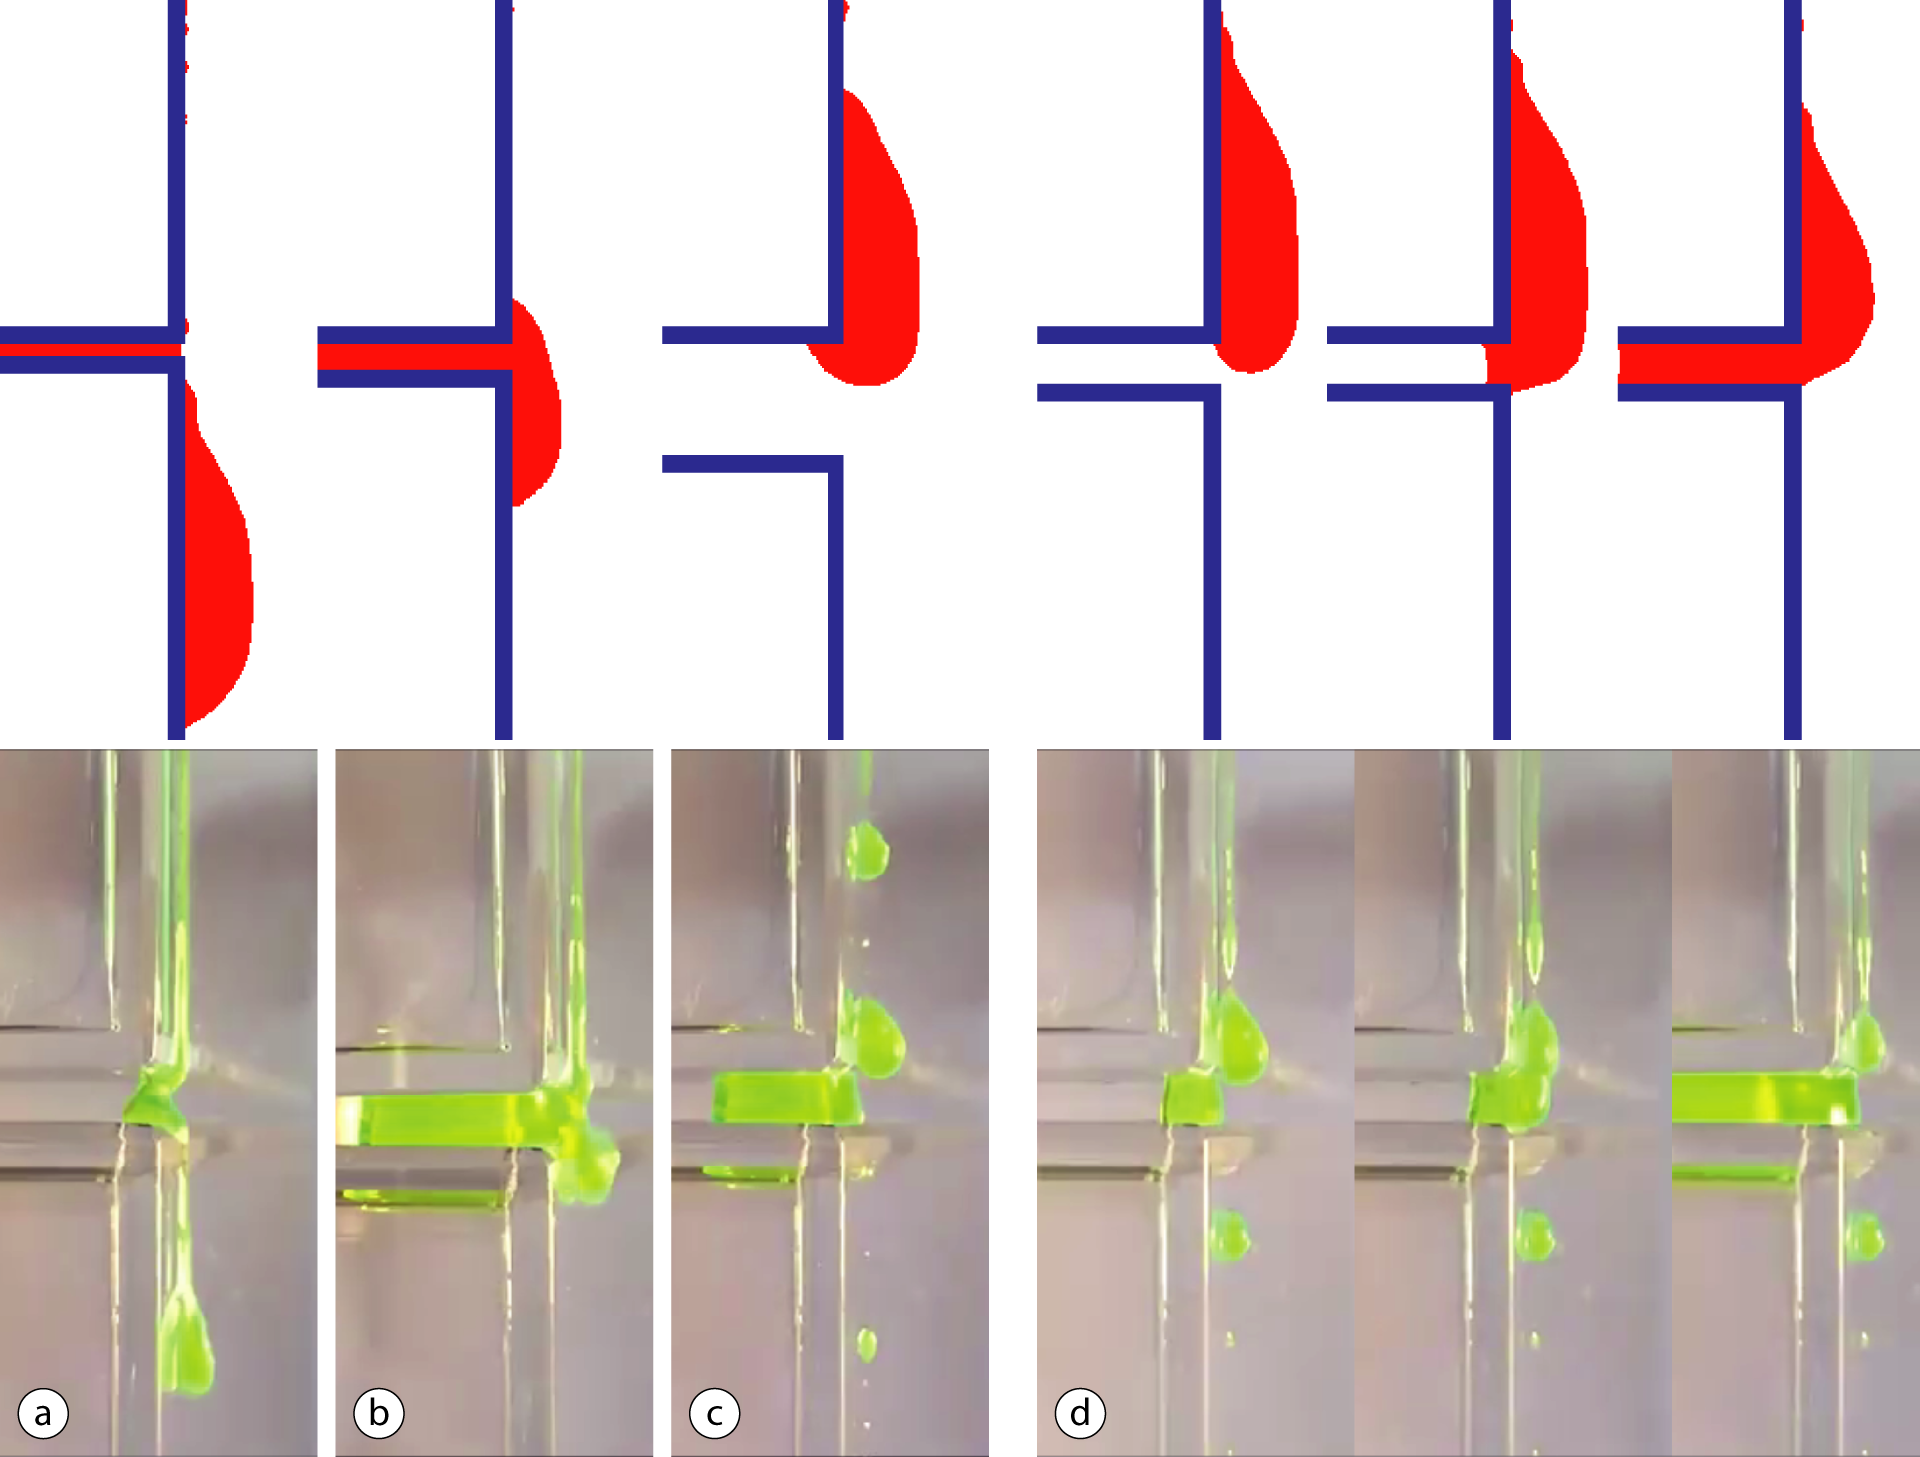 Droplet dynamics at fracture intersections (SPH vs. laboratory)